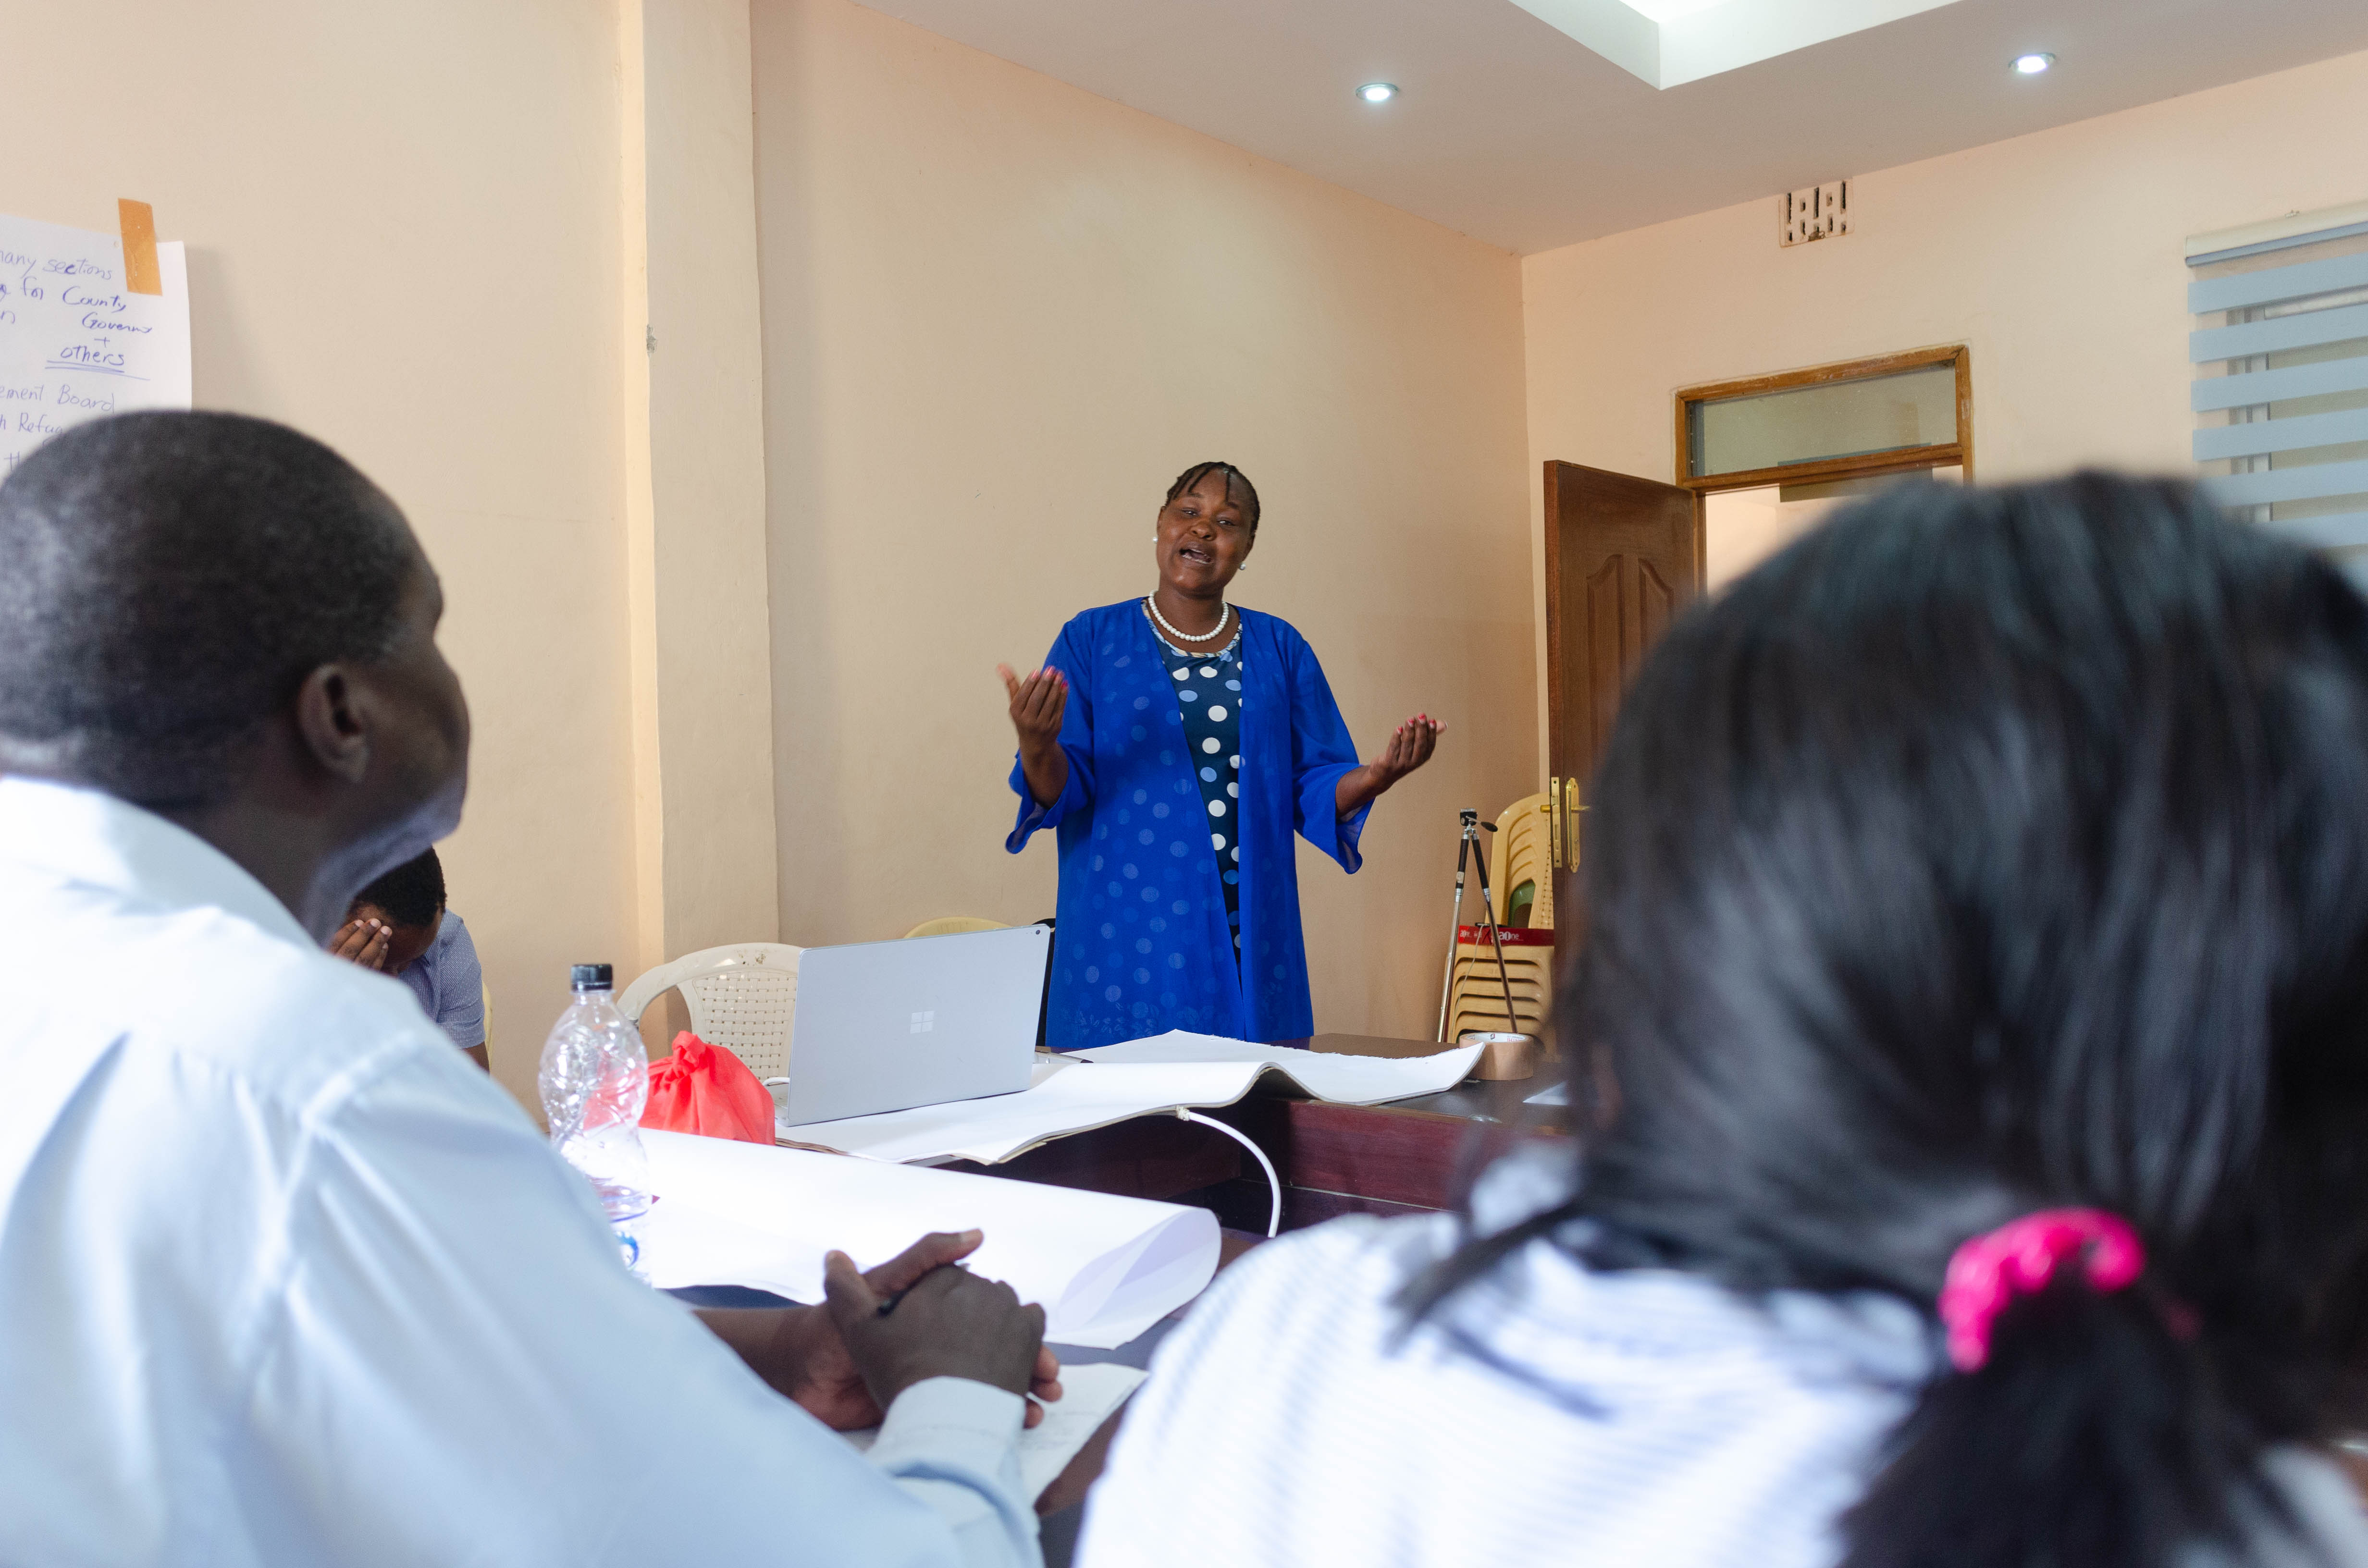 CECM Esther Lokwei Lokiyo offering her opinions on discussions within the workshop